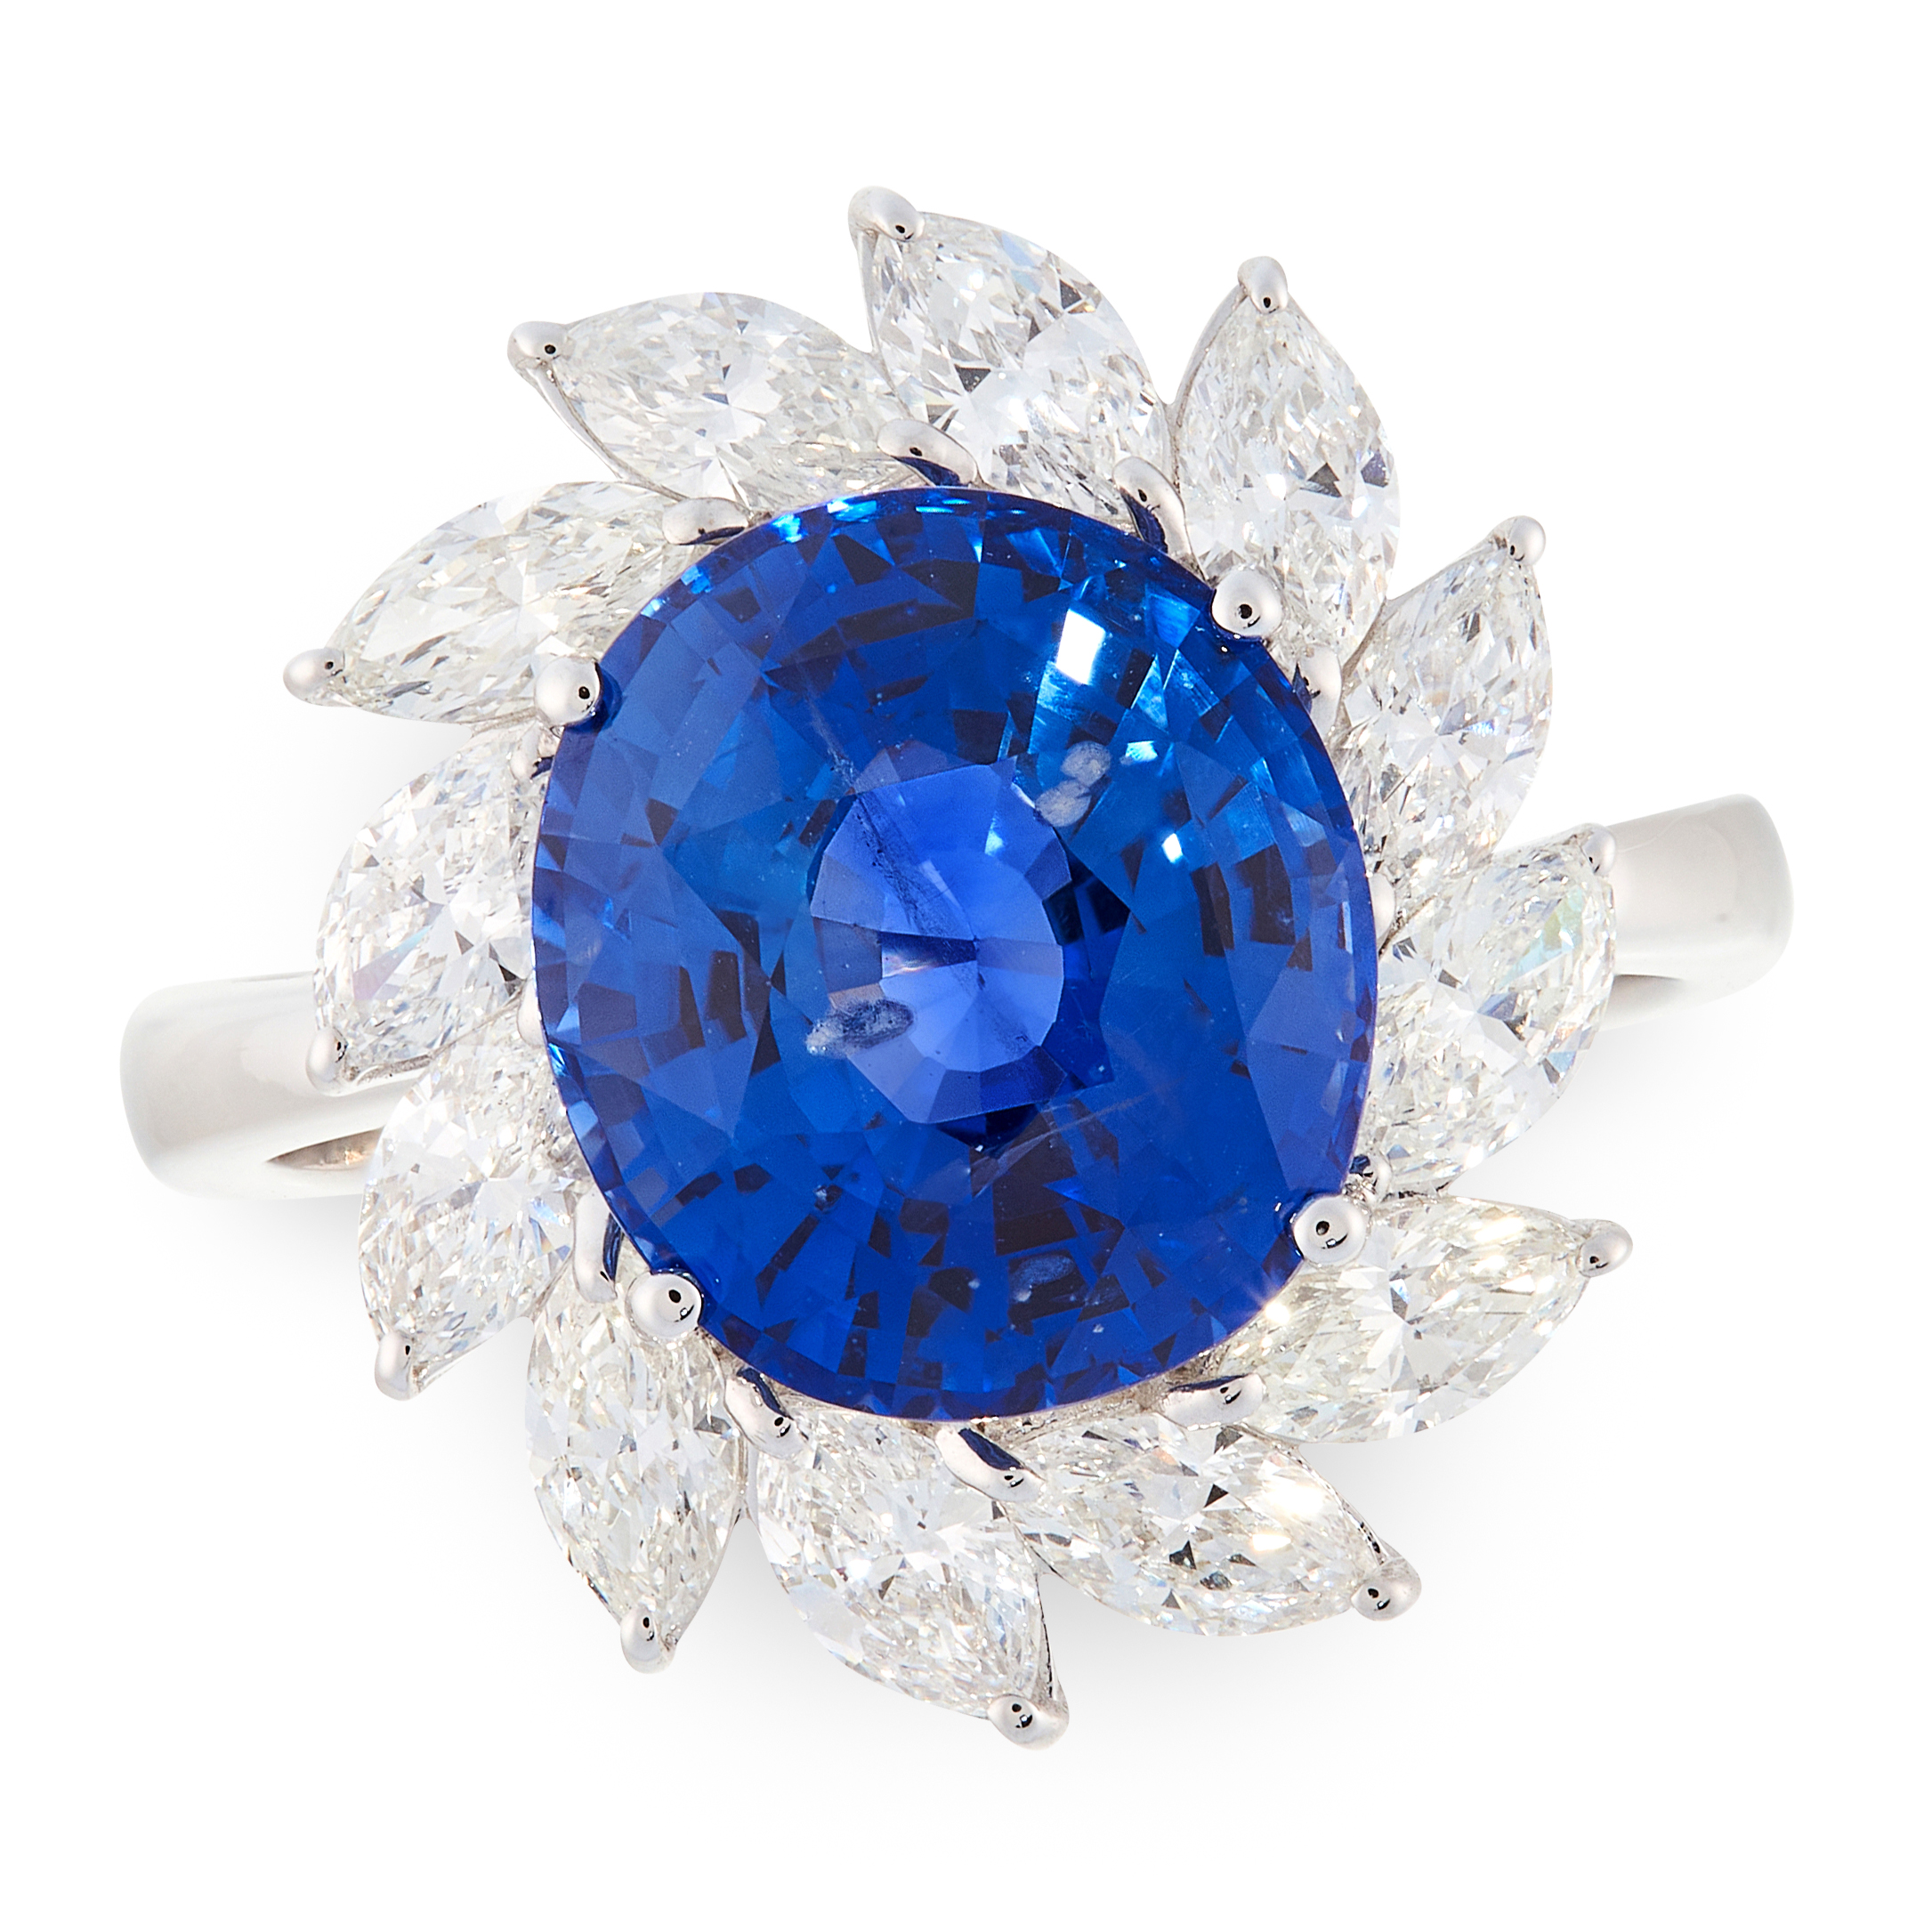 A SAPPHIRE AND DIAMOND CLUSTER RING in 18ct white gold, set with an oval cut sapphire of 6.77 carats